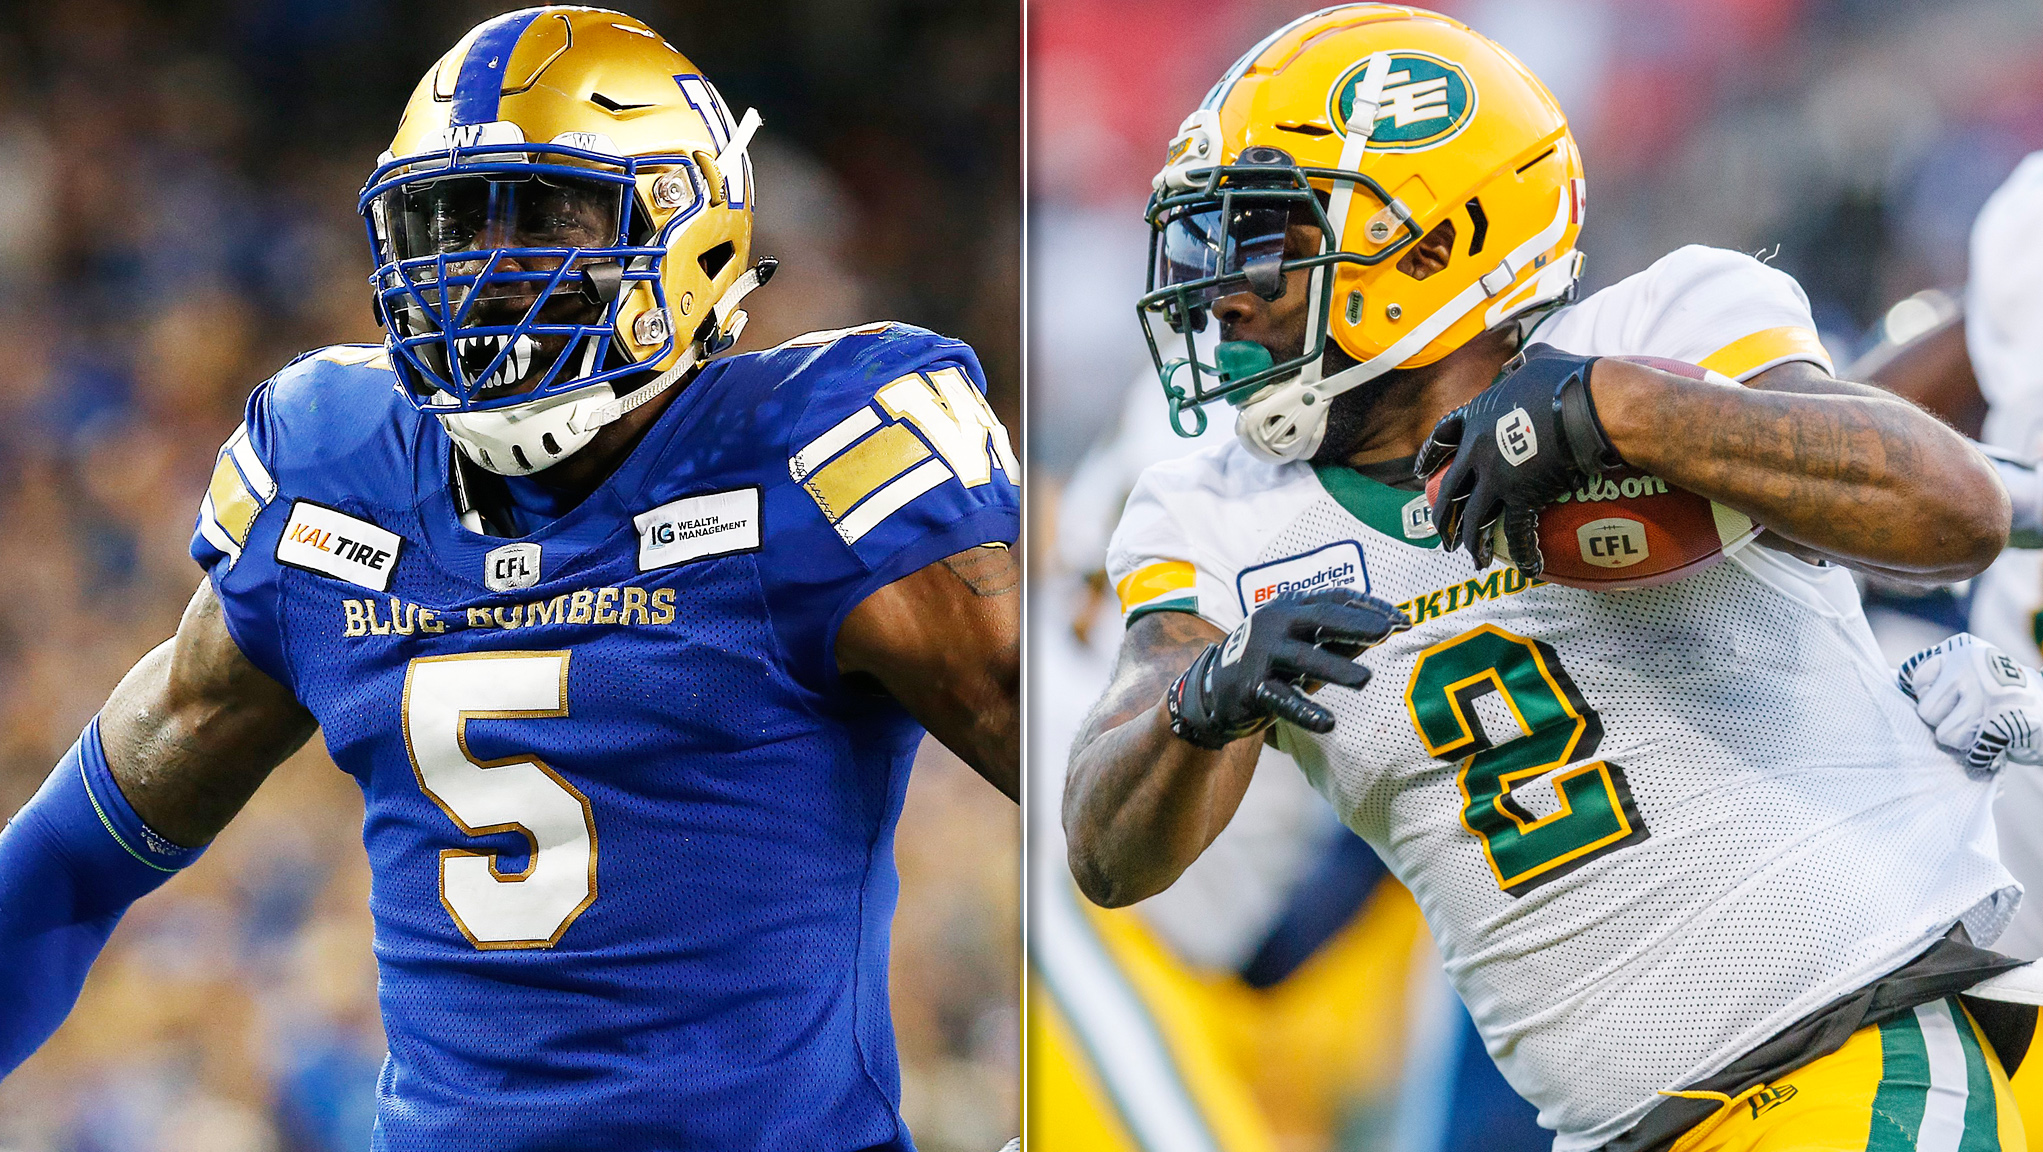 Esks, Bombers battle for first place in the West - CFL.ca